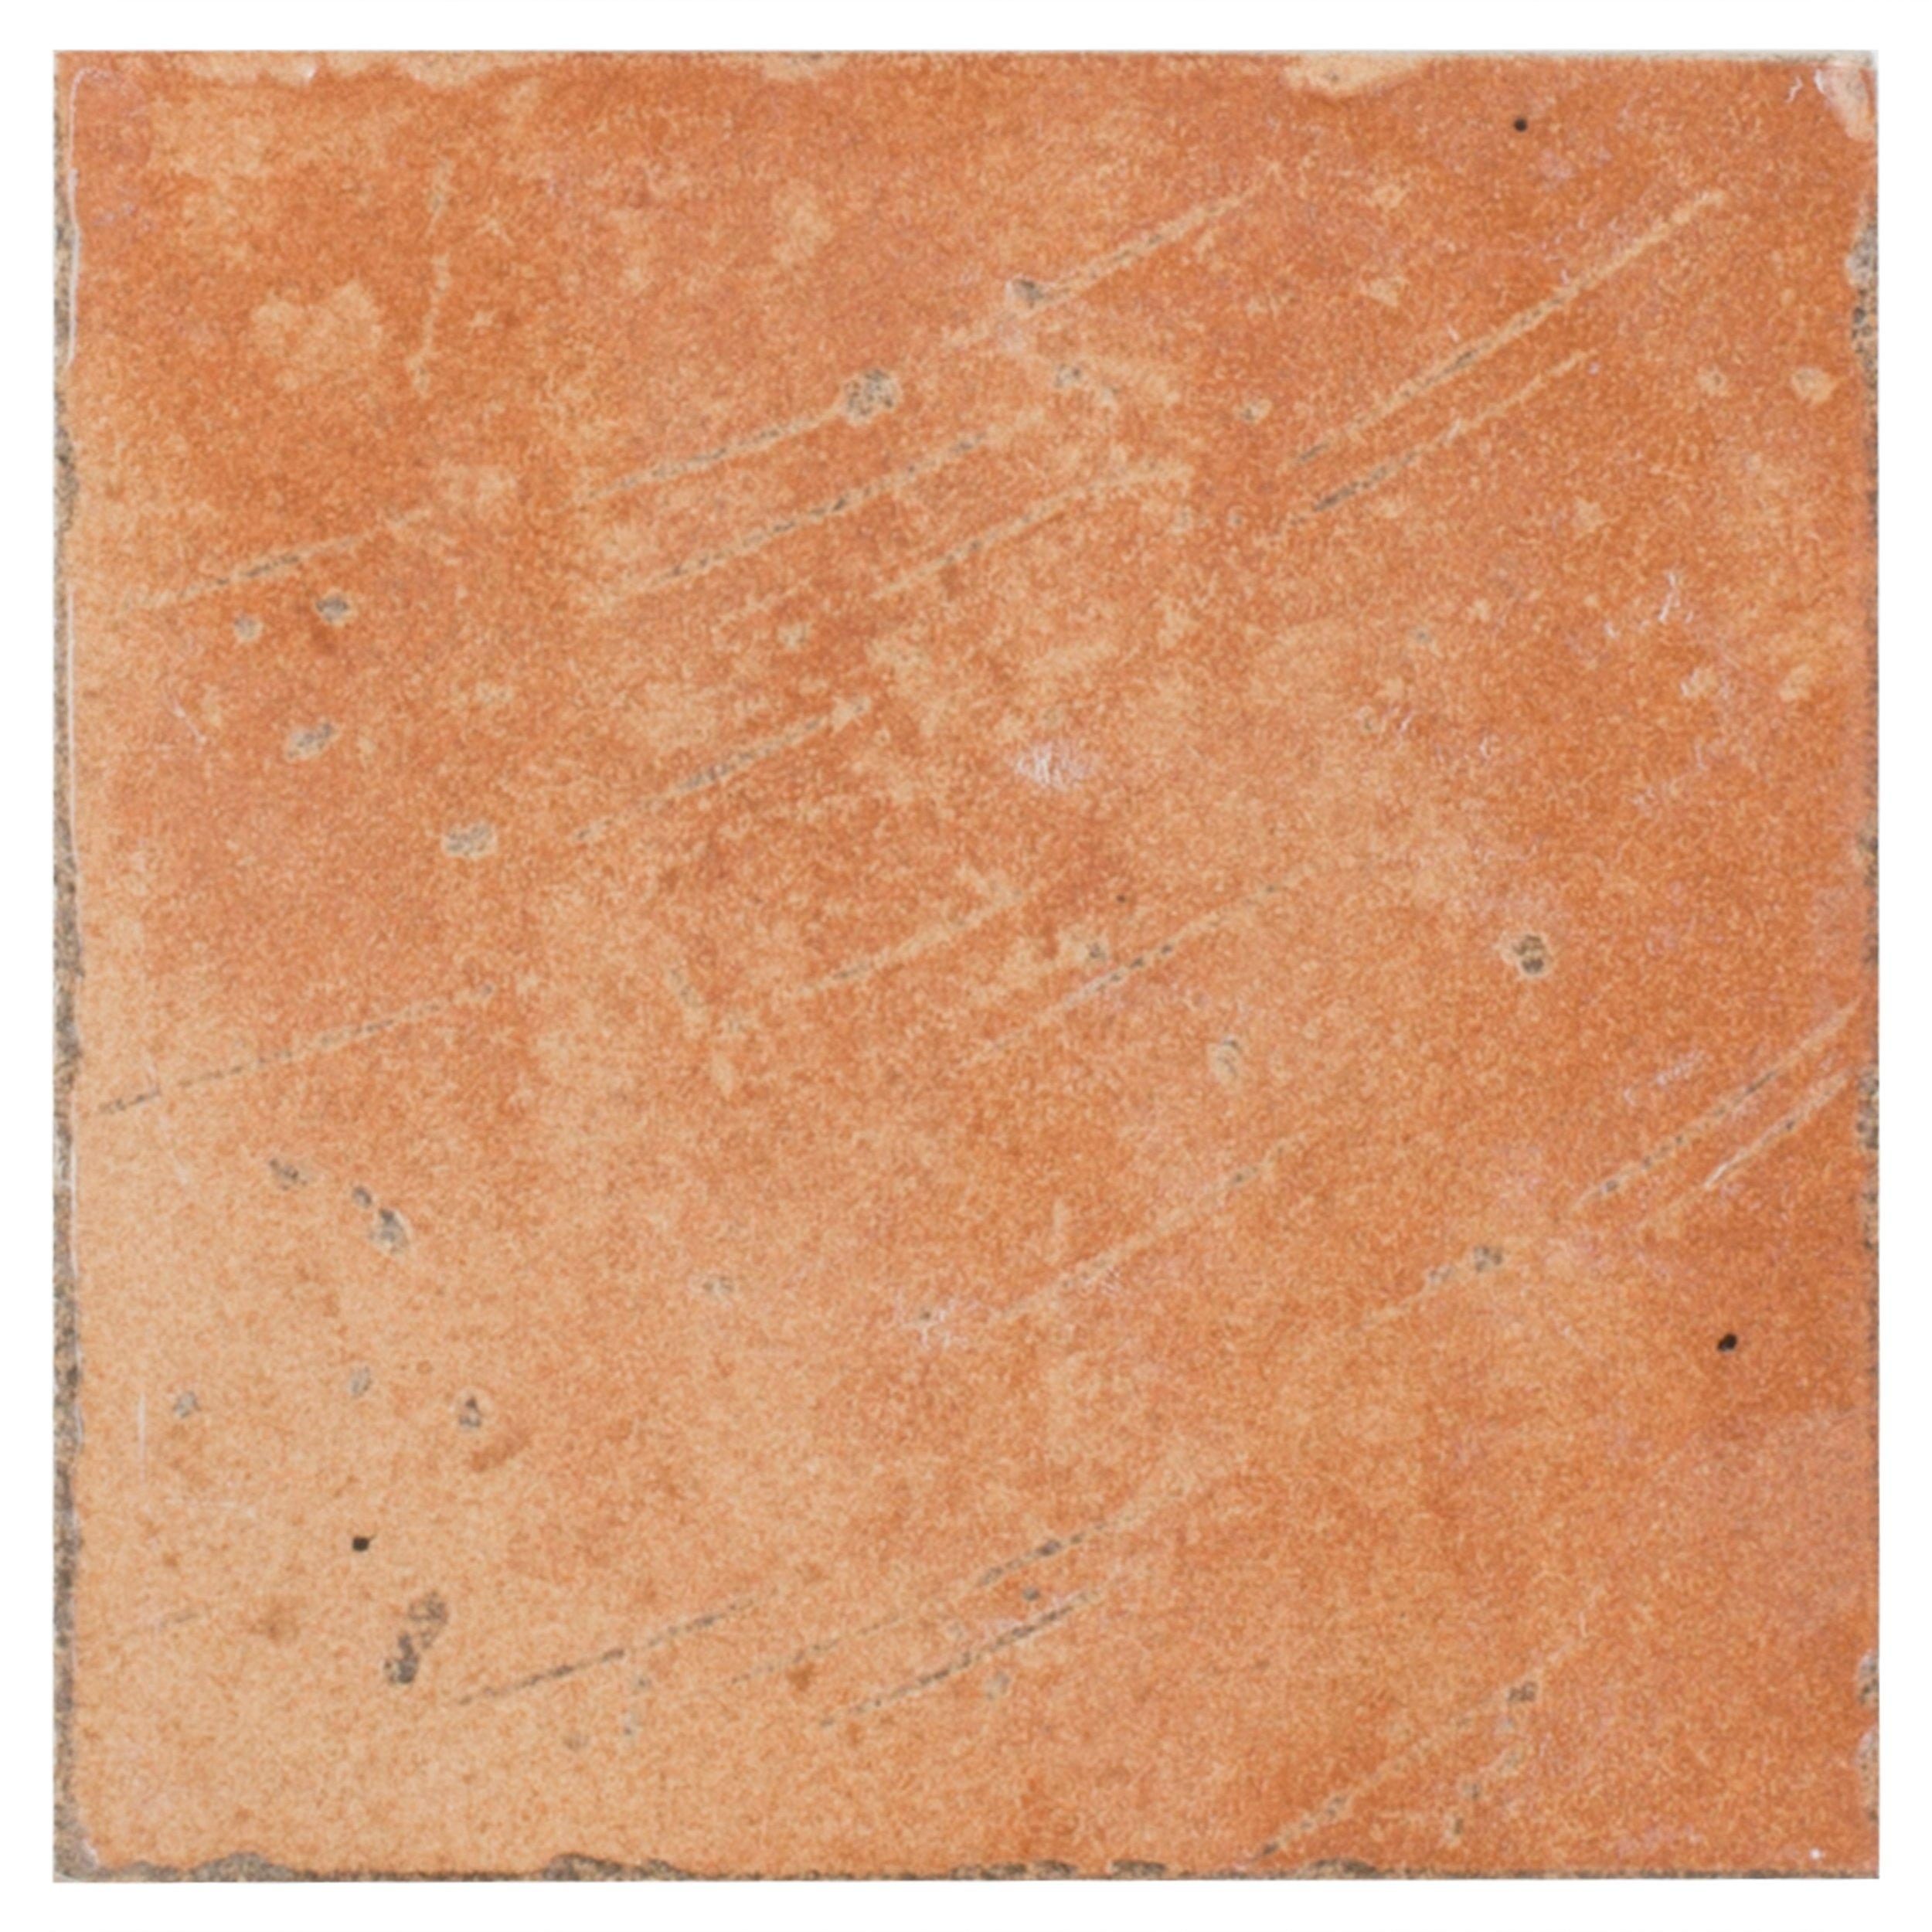 Redpink tile floor decor quintana spada red porcelain tile dailygadgetfo Image collections